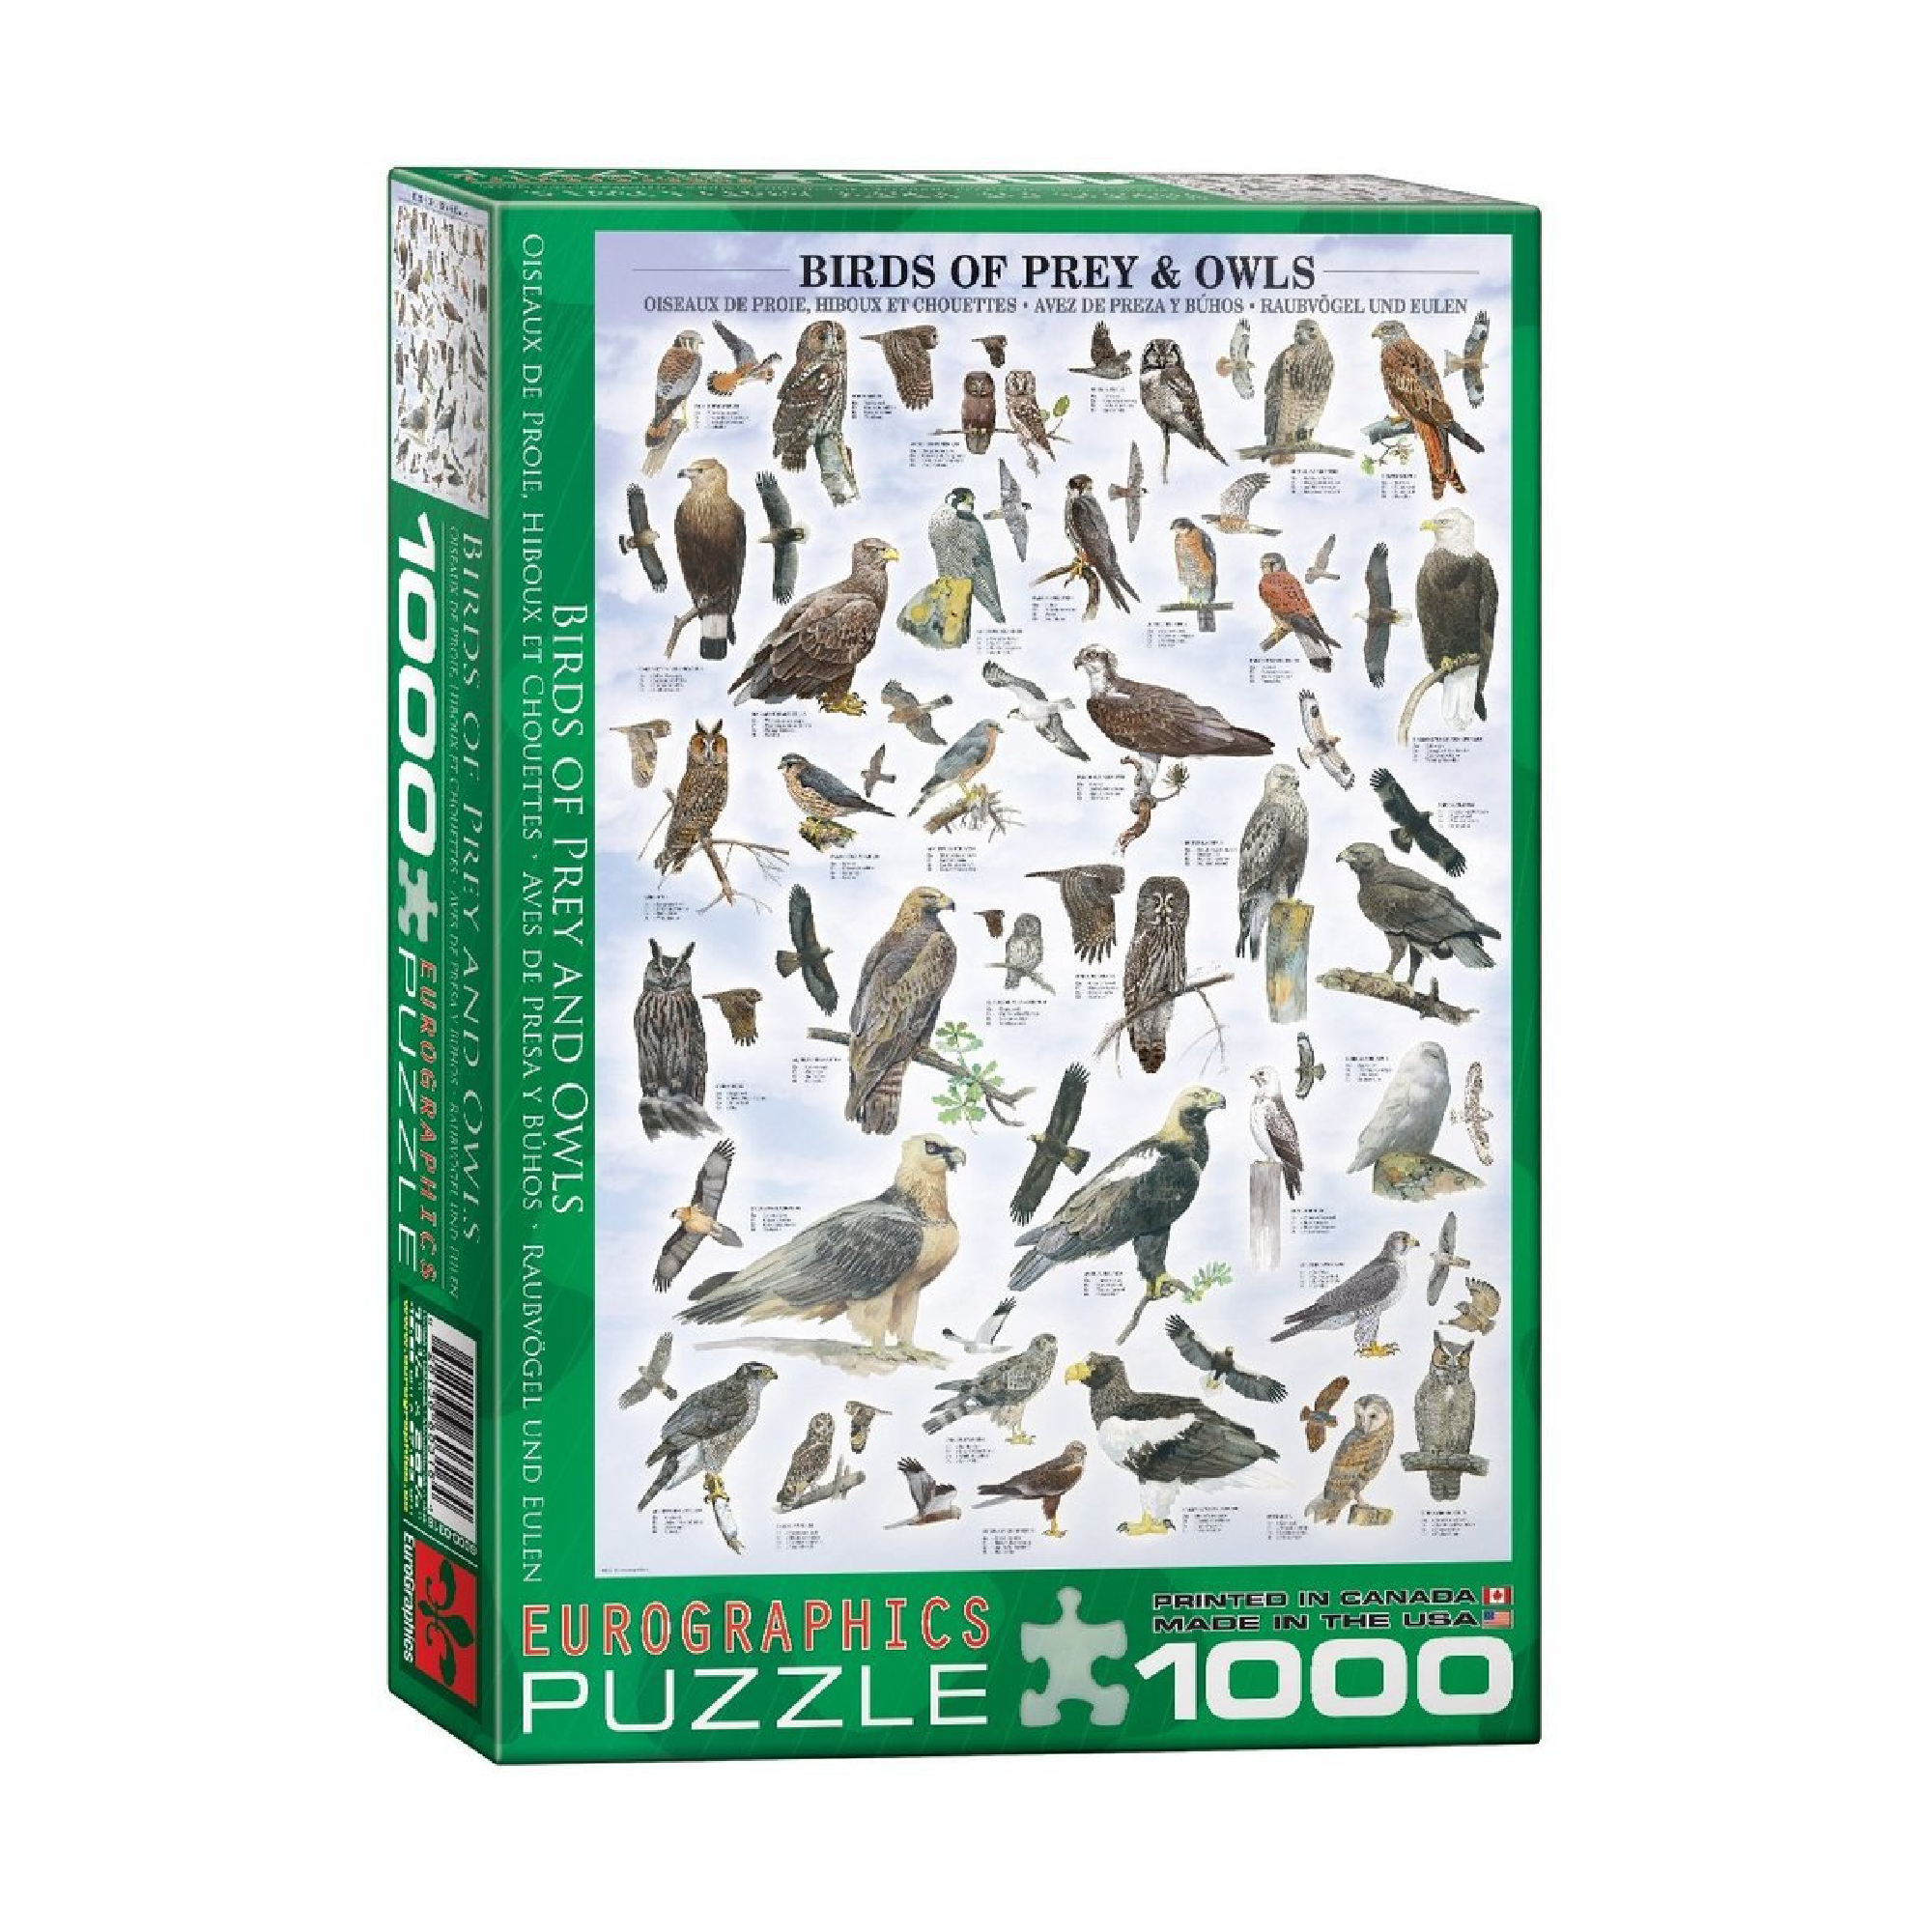 Eurographics Puzzle 1000: Birds of Prey and Owls